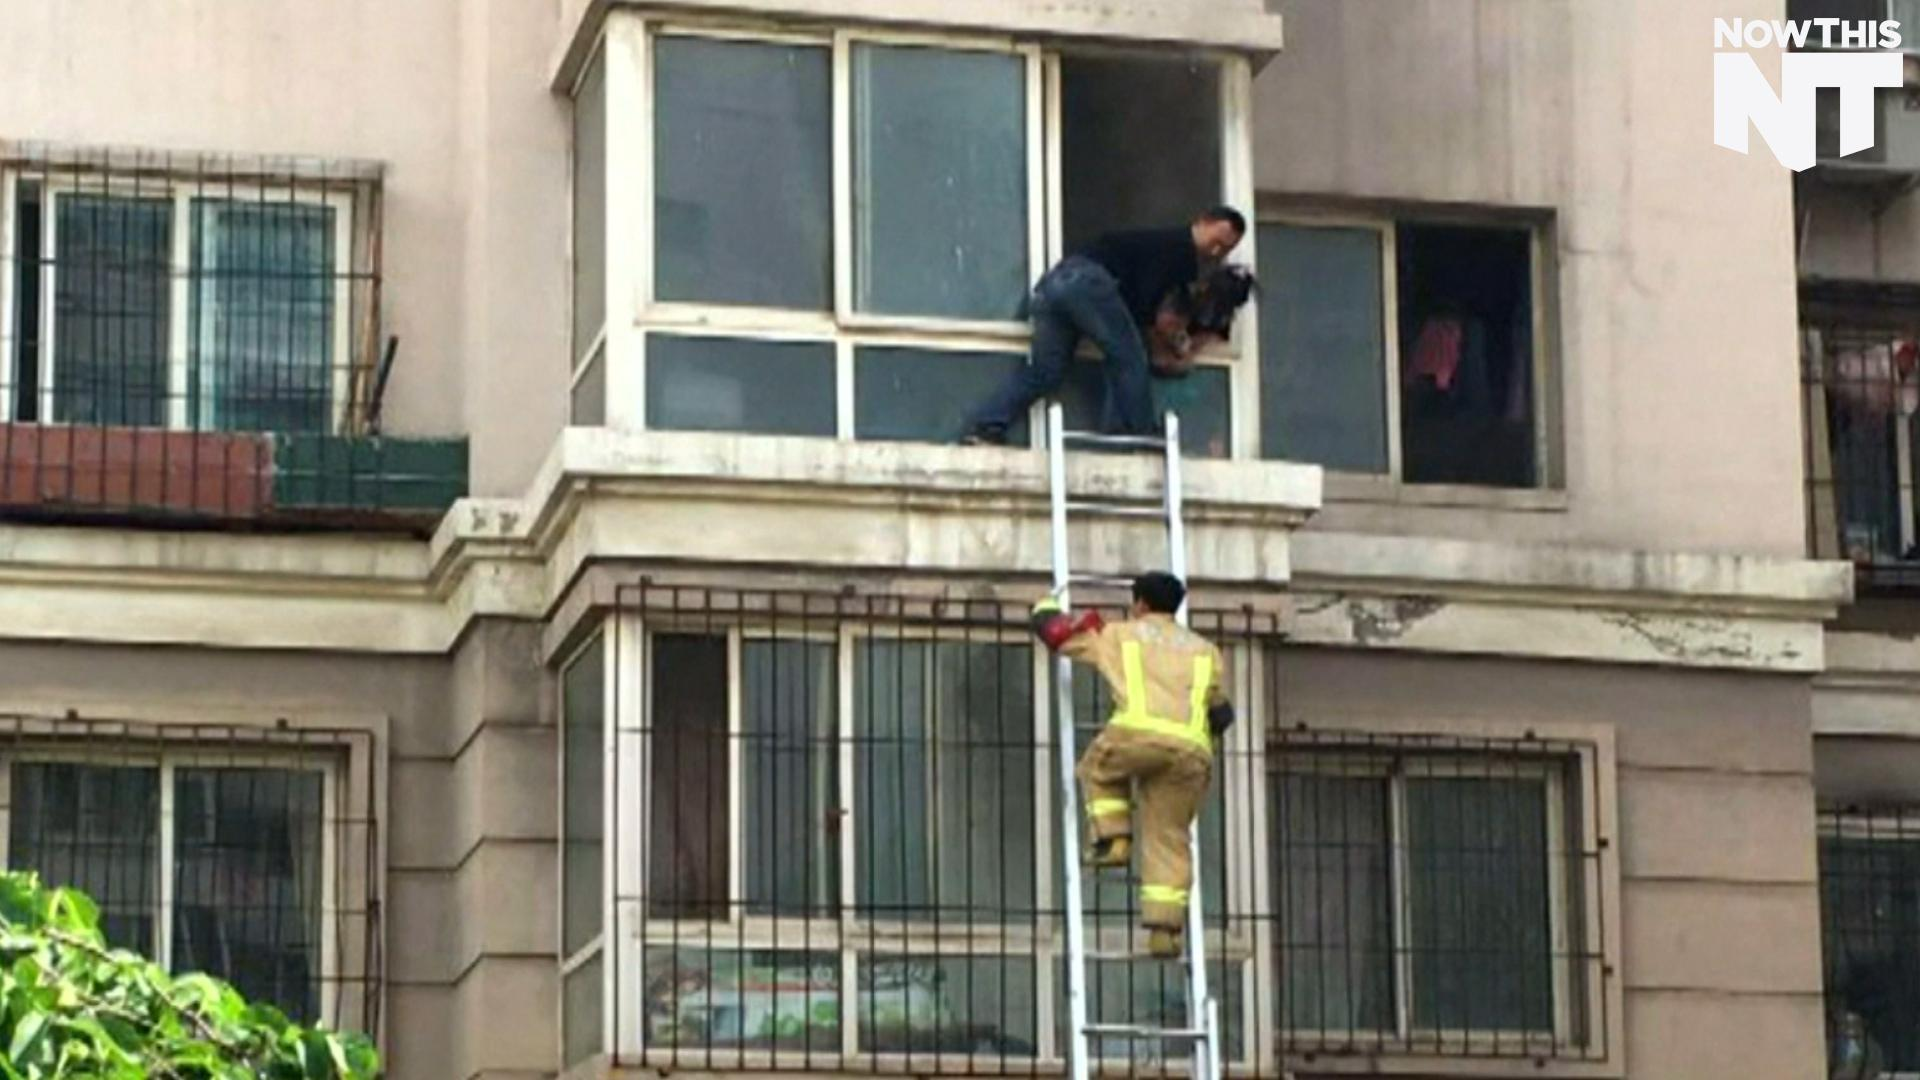 Man Climbs Into Burning Building To Rescue Two Children